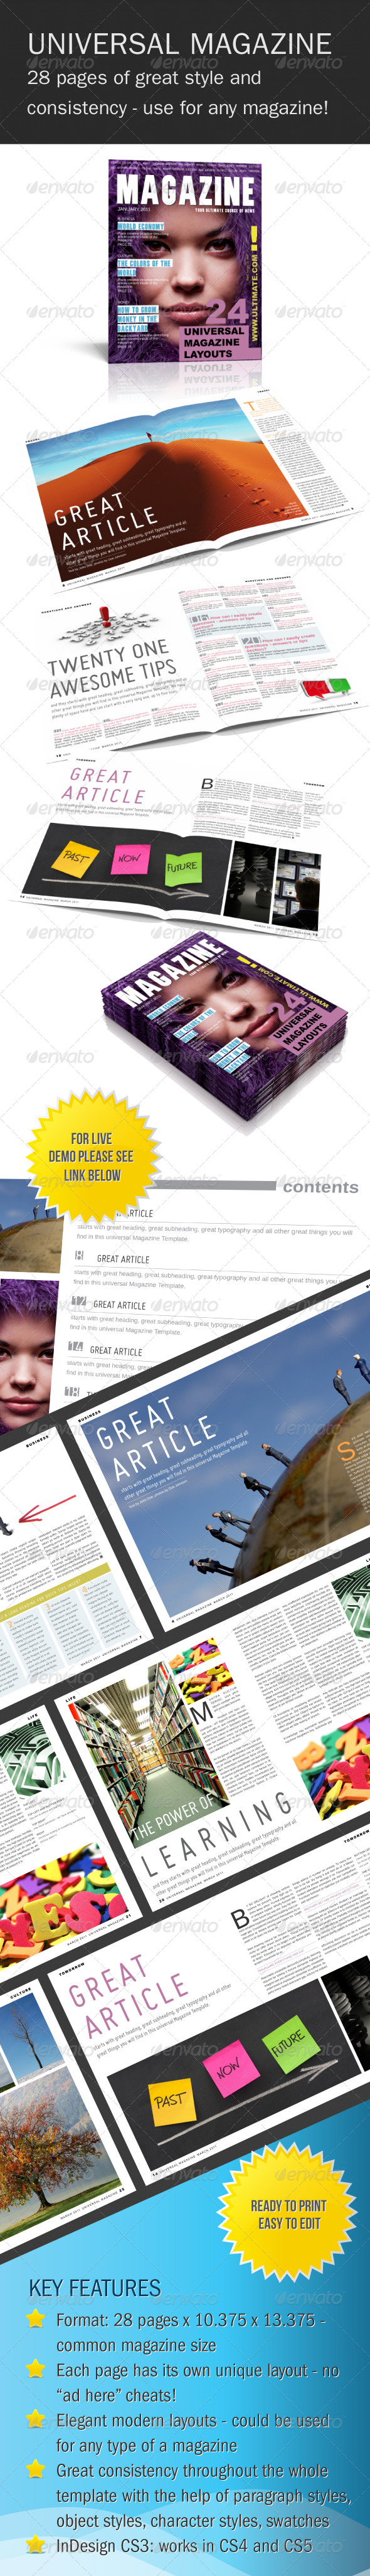 InDesign magazine template to download & edit